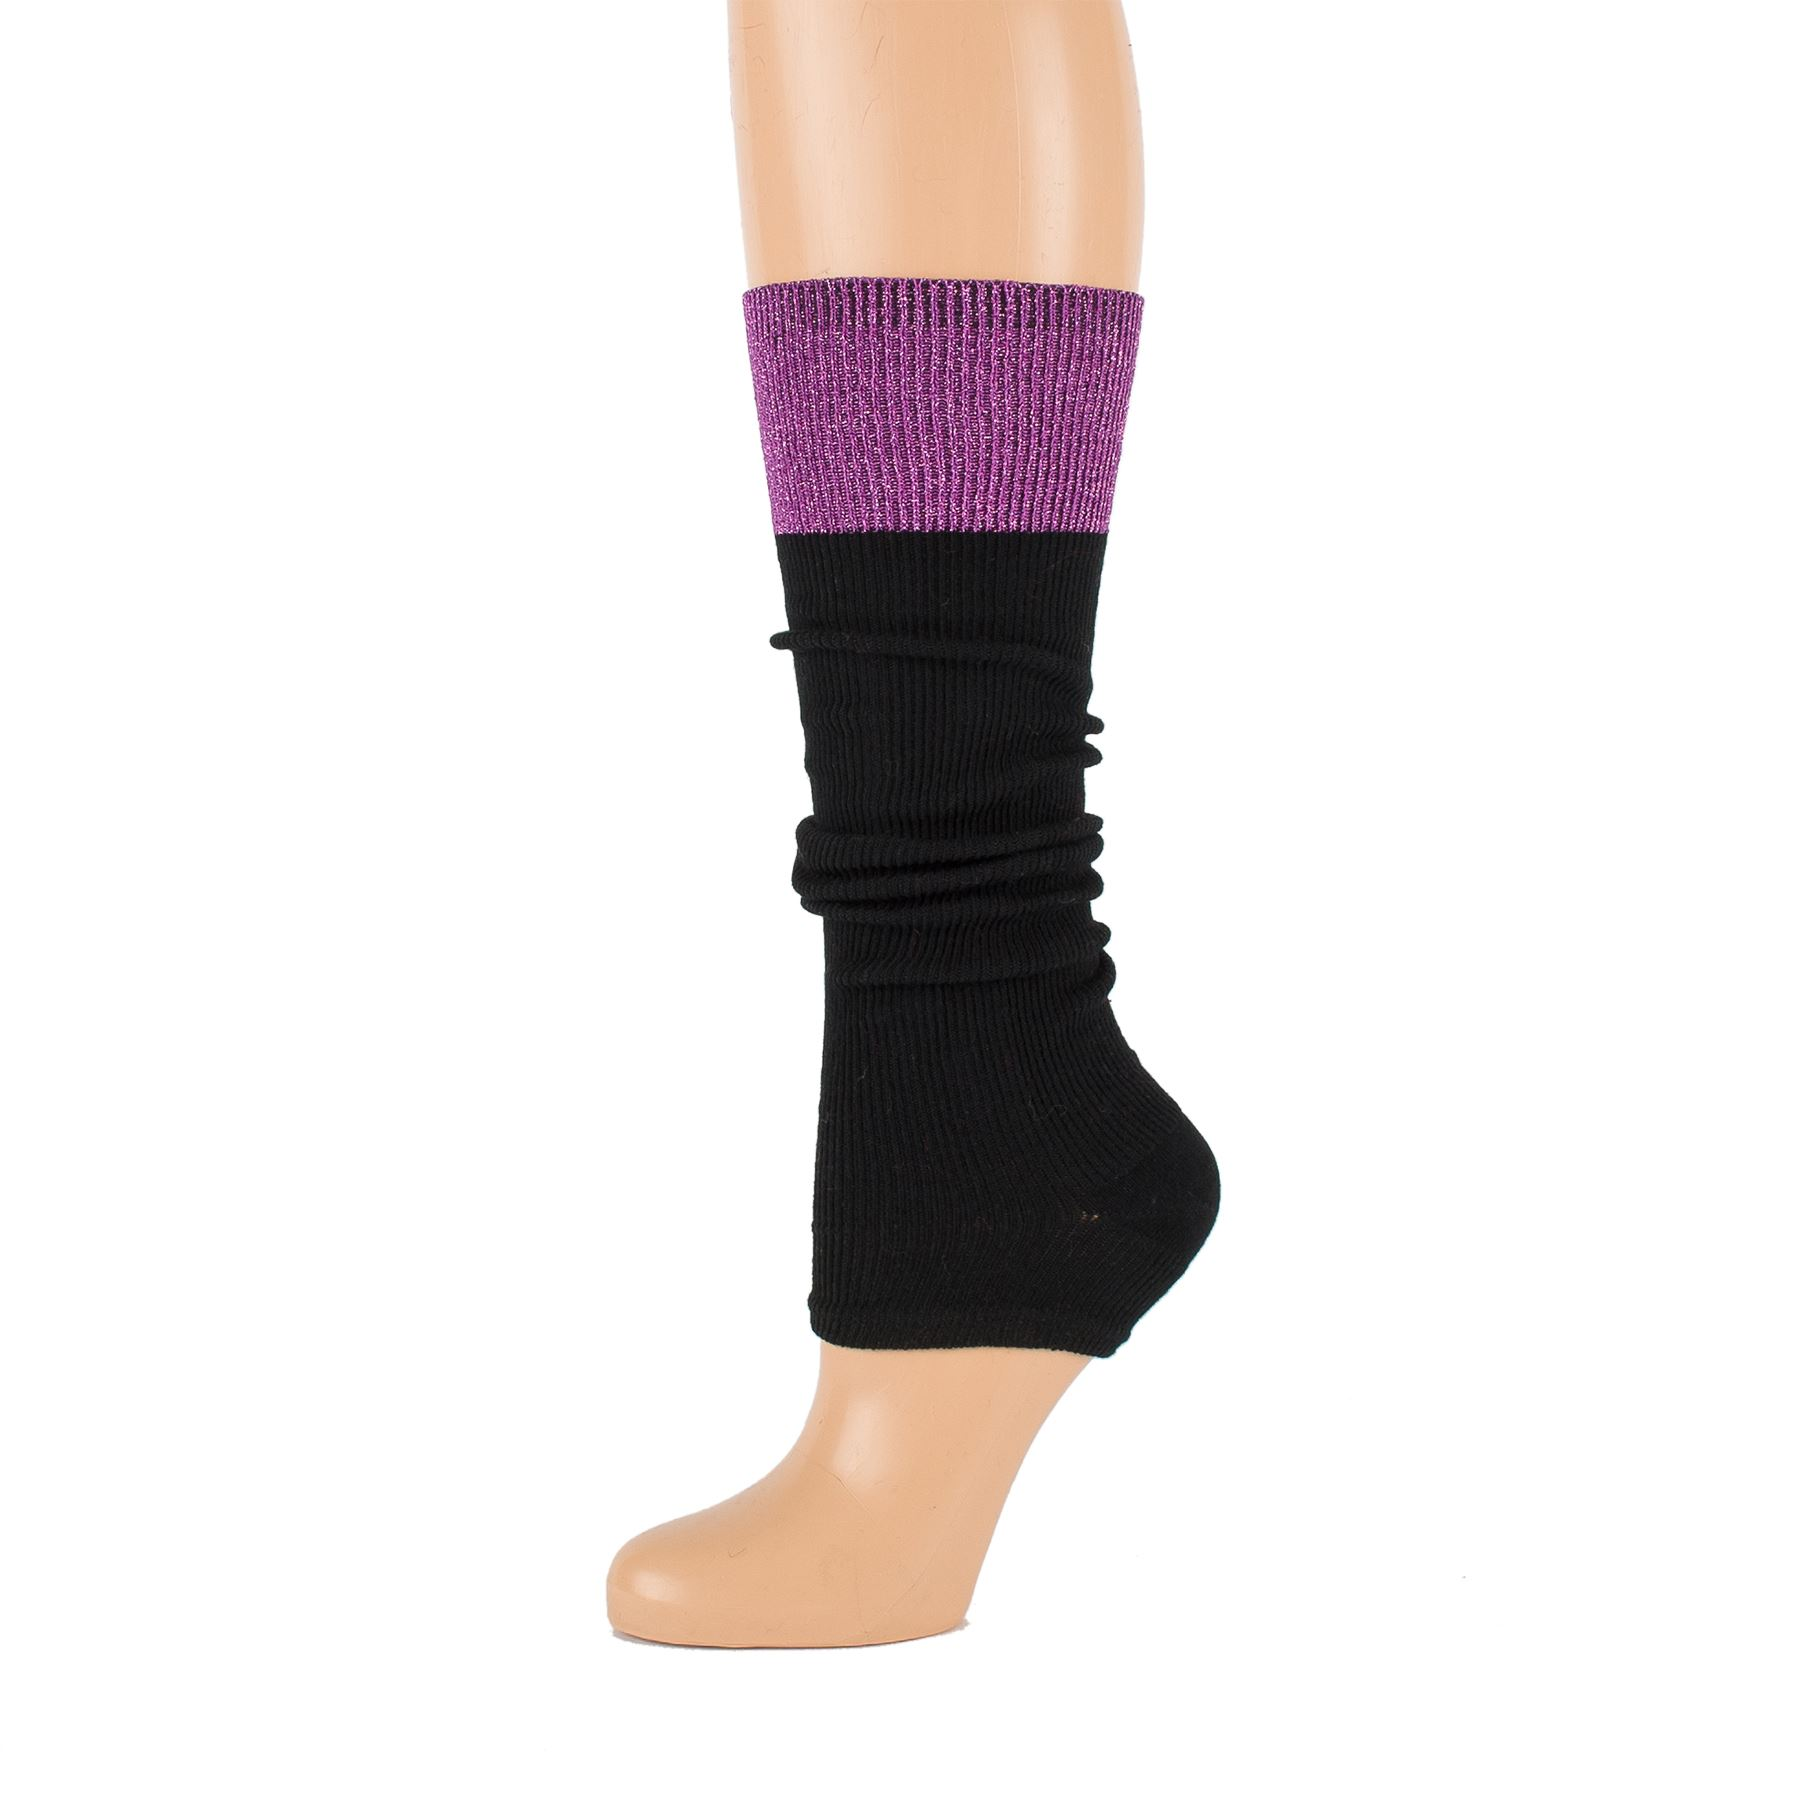 how to wear baby leg warmers